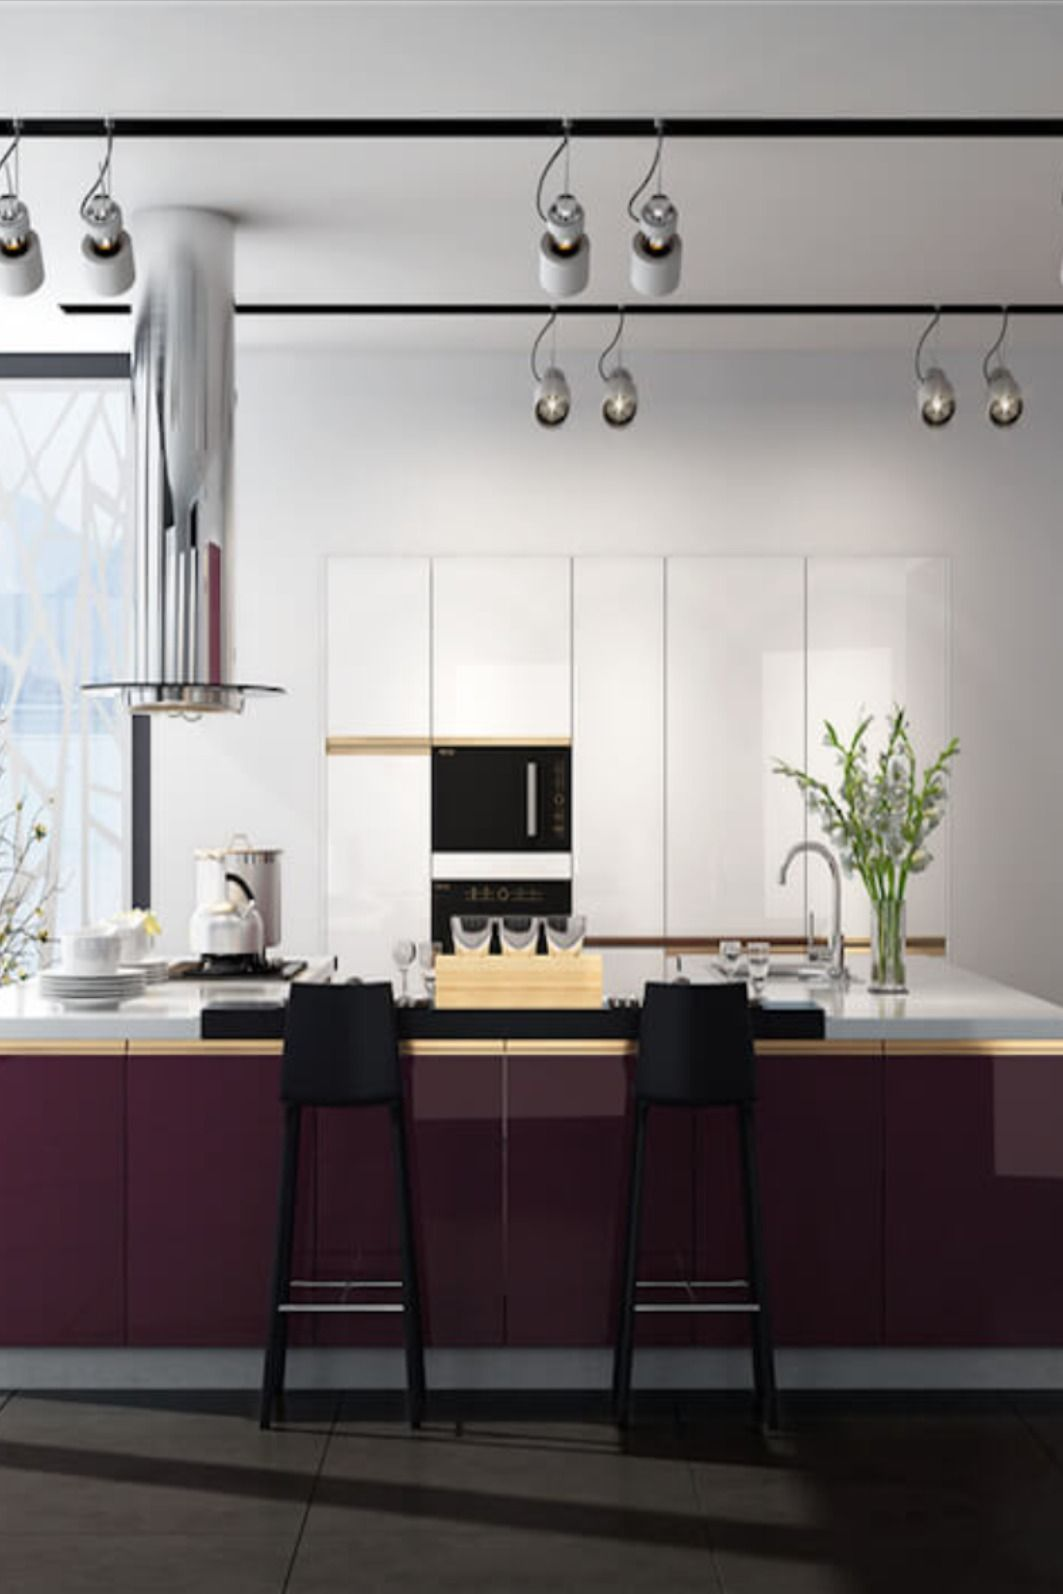 Water Based Lacquer For Kitchen Cabinets Kitchen Cabinets Best Kitchen Cabinets Kitchen Paint